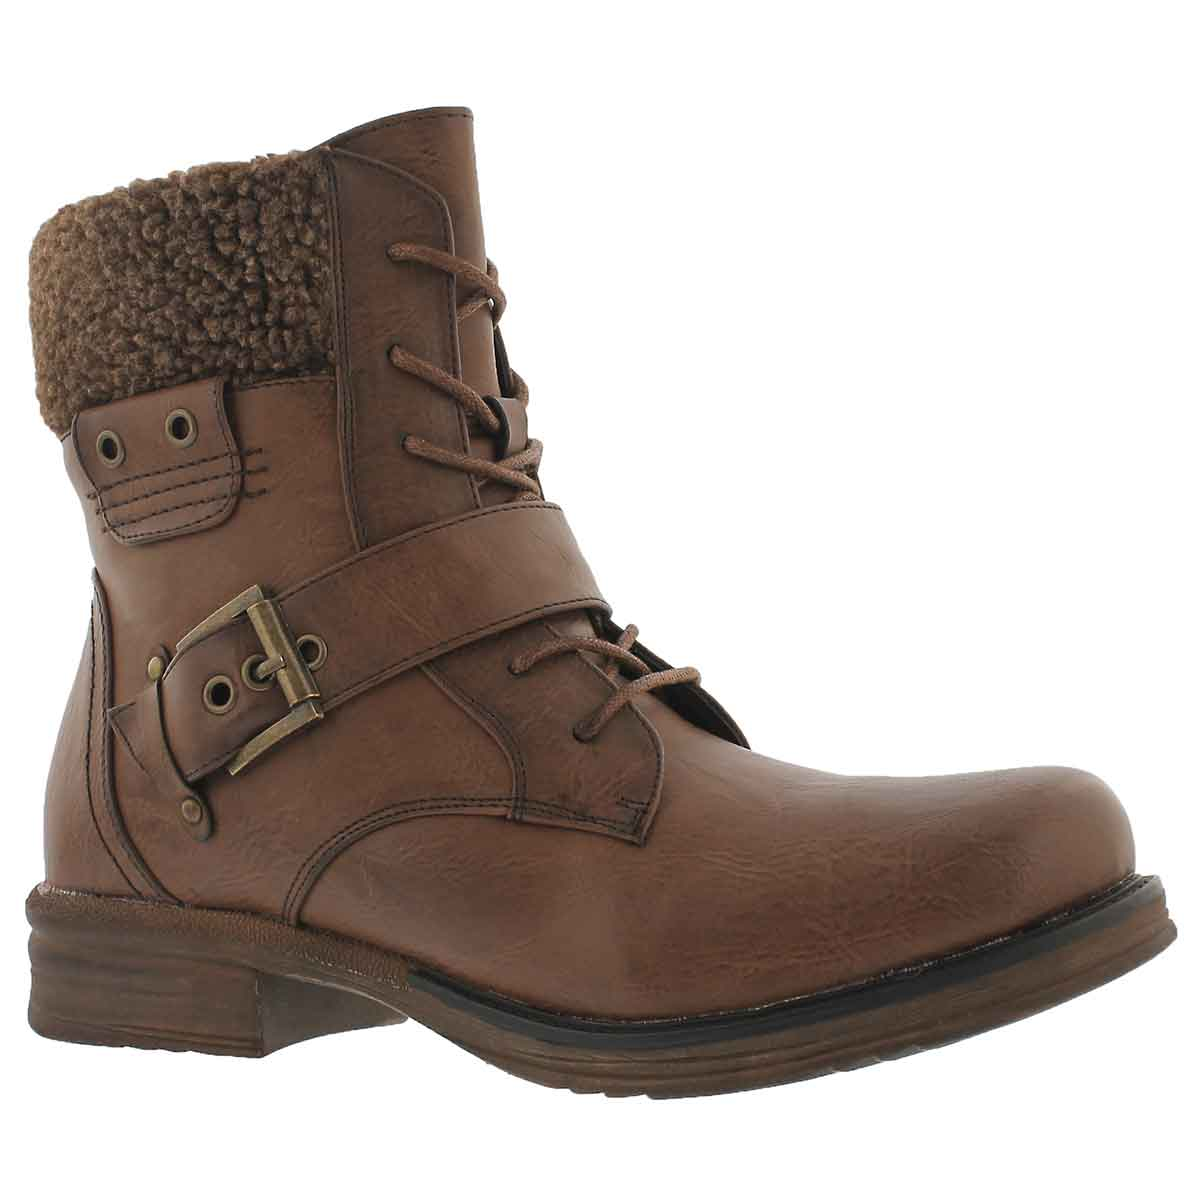 Women's KIARA 2 brown lace up casual boots